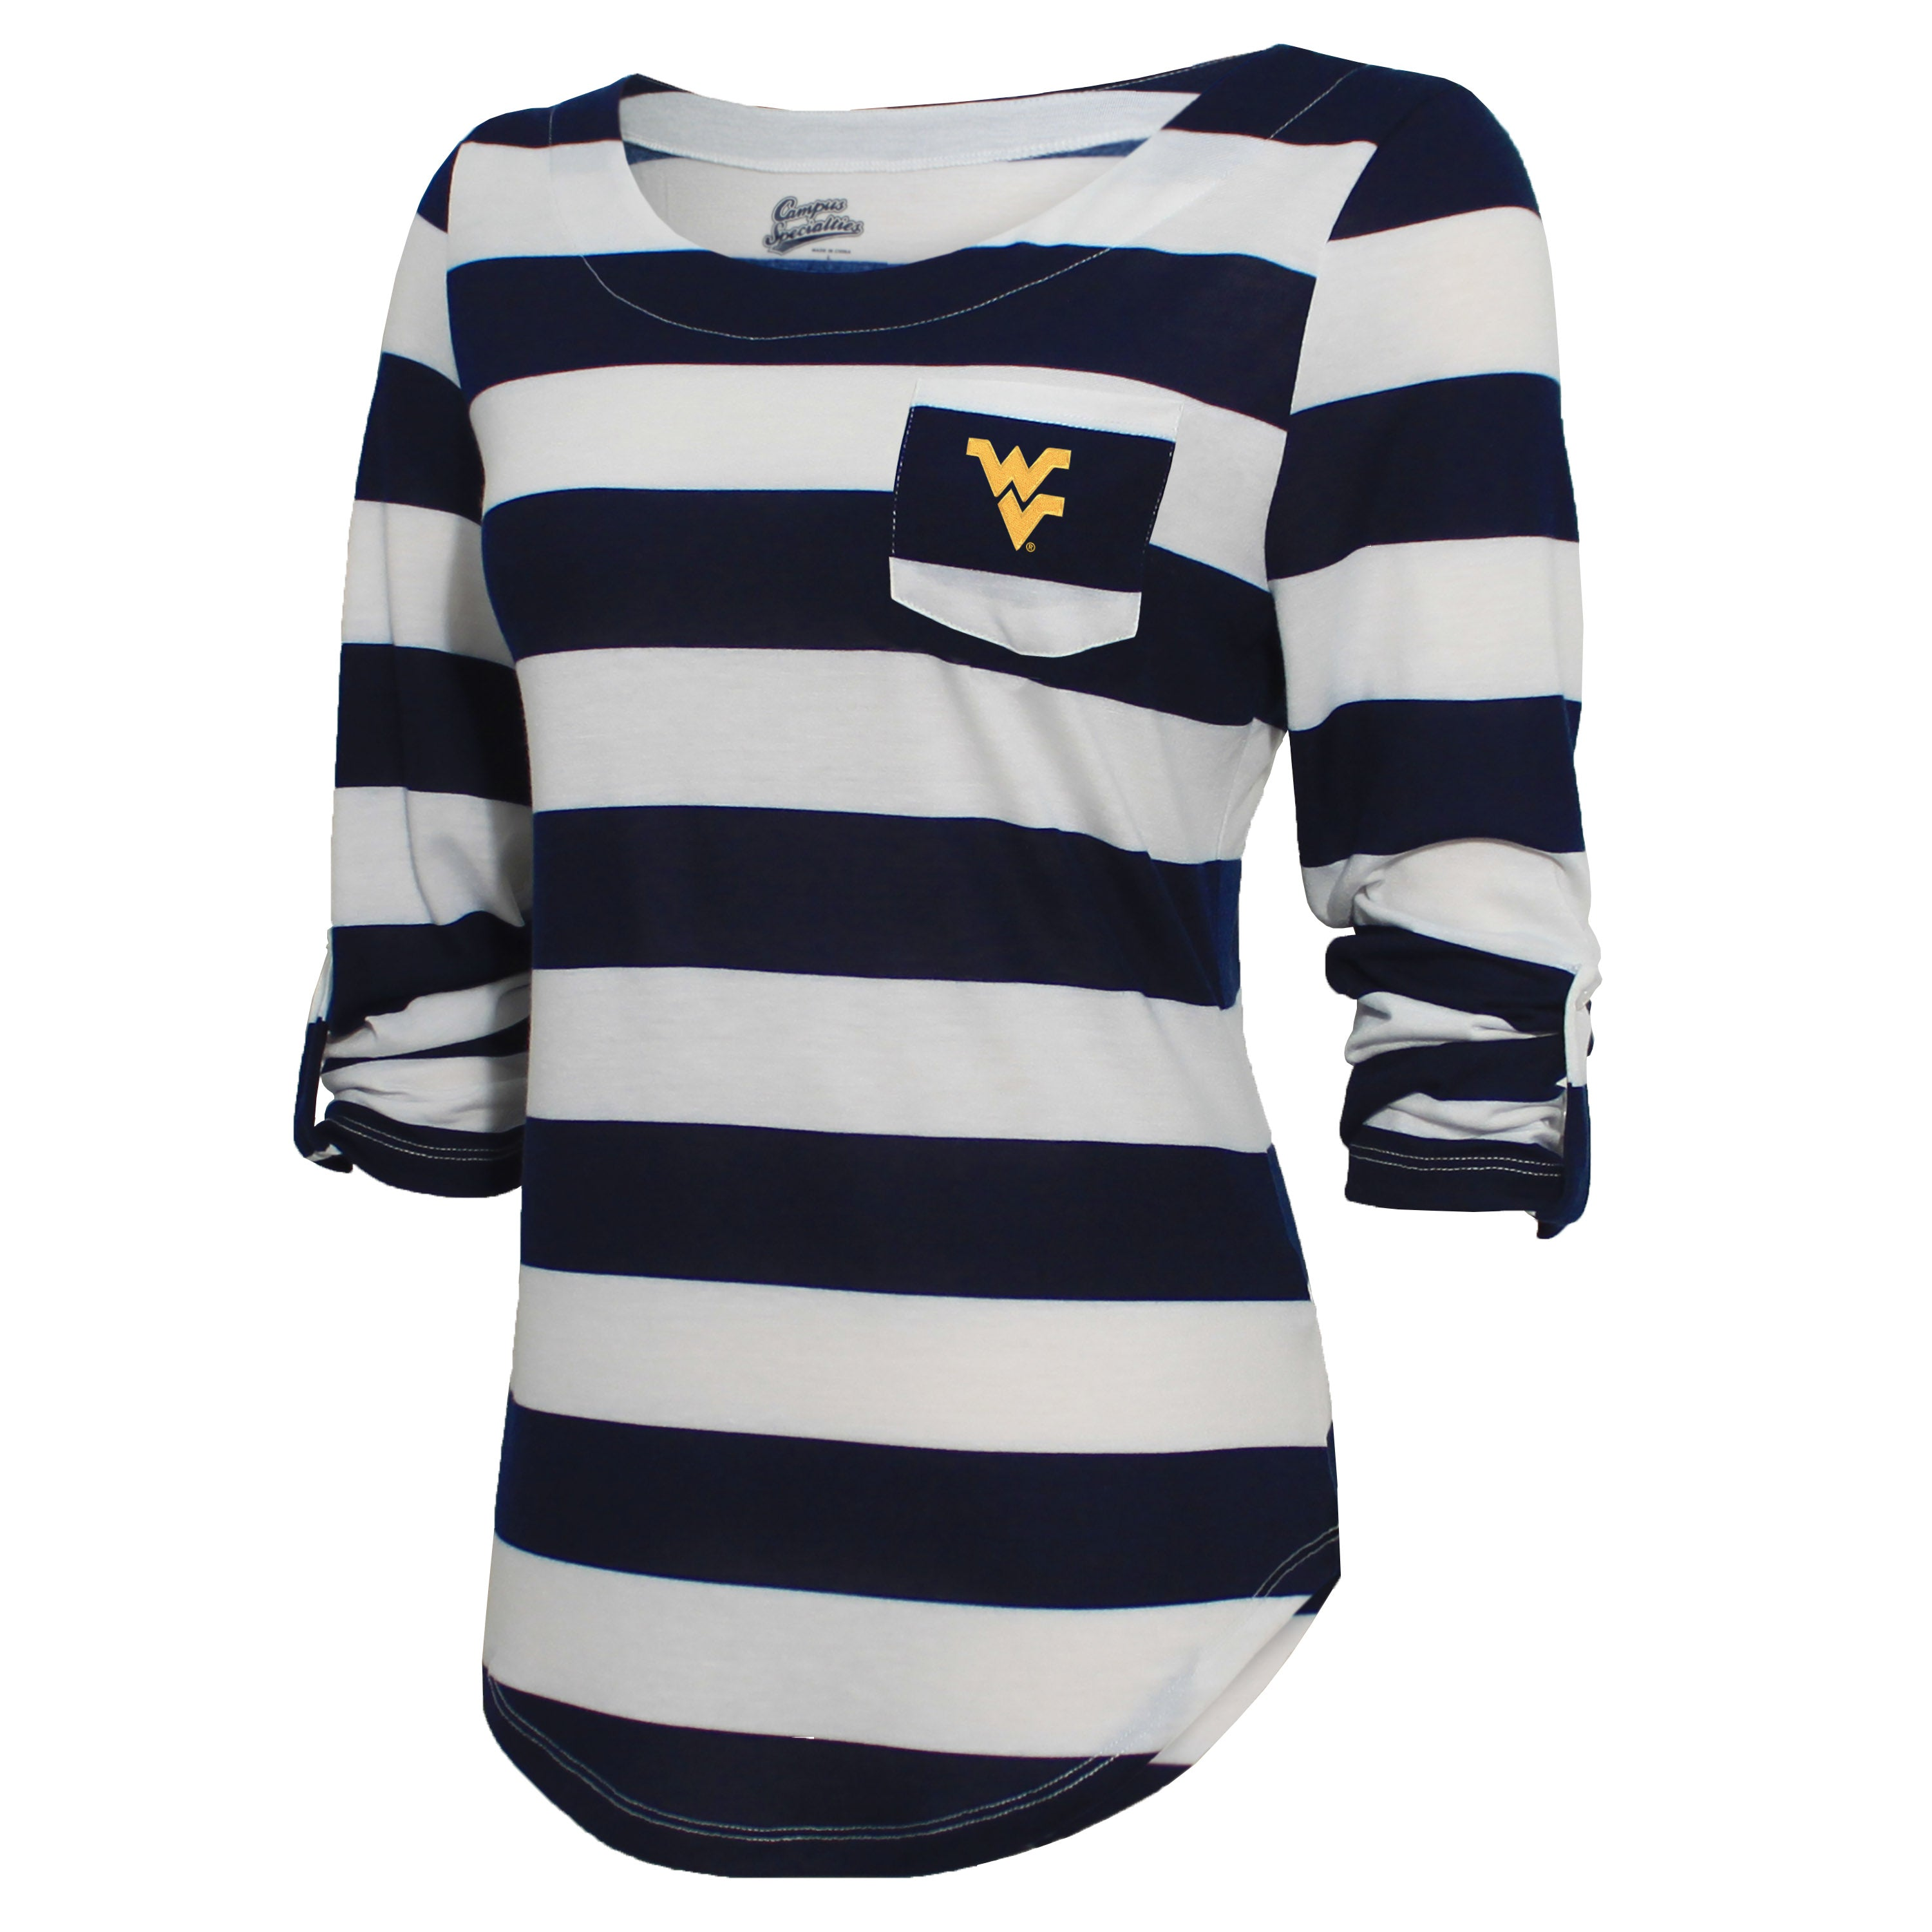 Campus Specialties West Virginia Women's Navy Striped Pocket Top